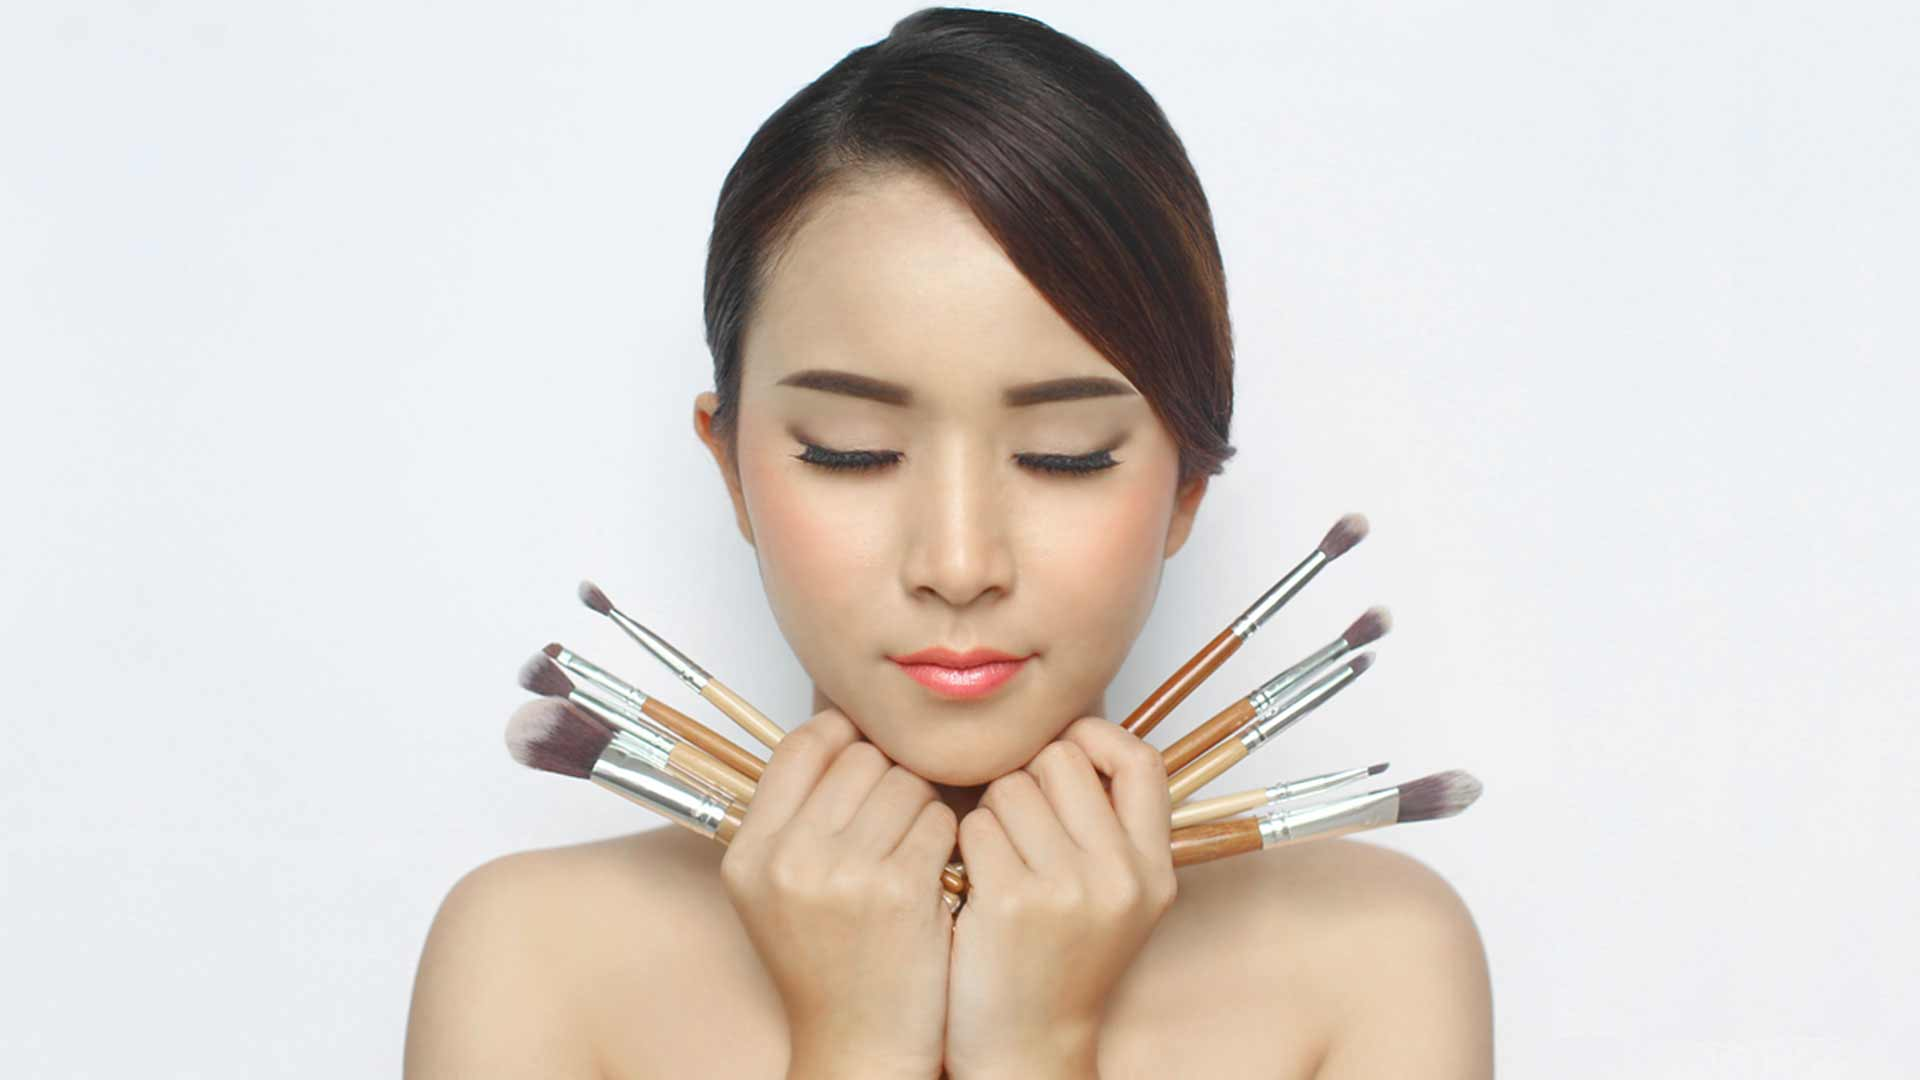 make-up artistry foundation course in KL Malaysia